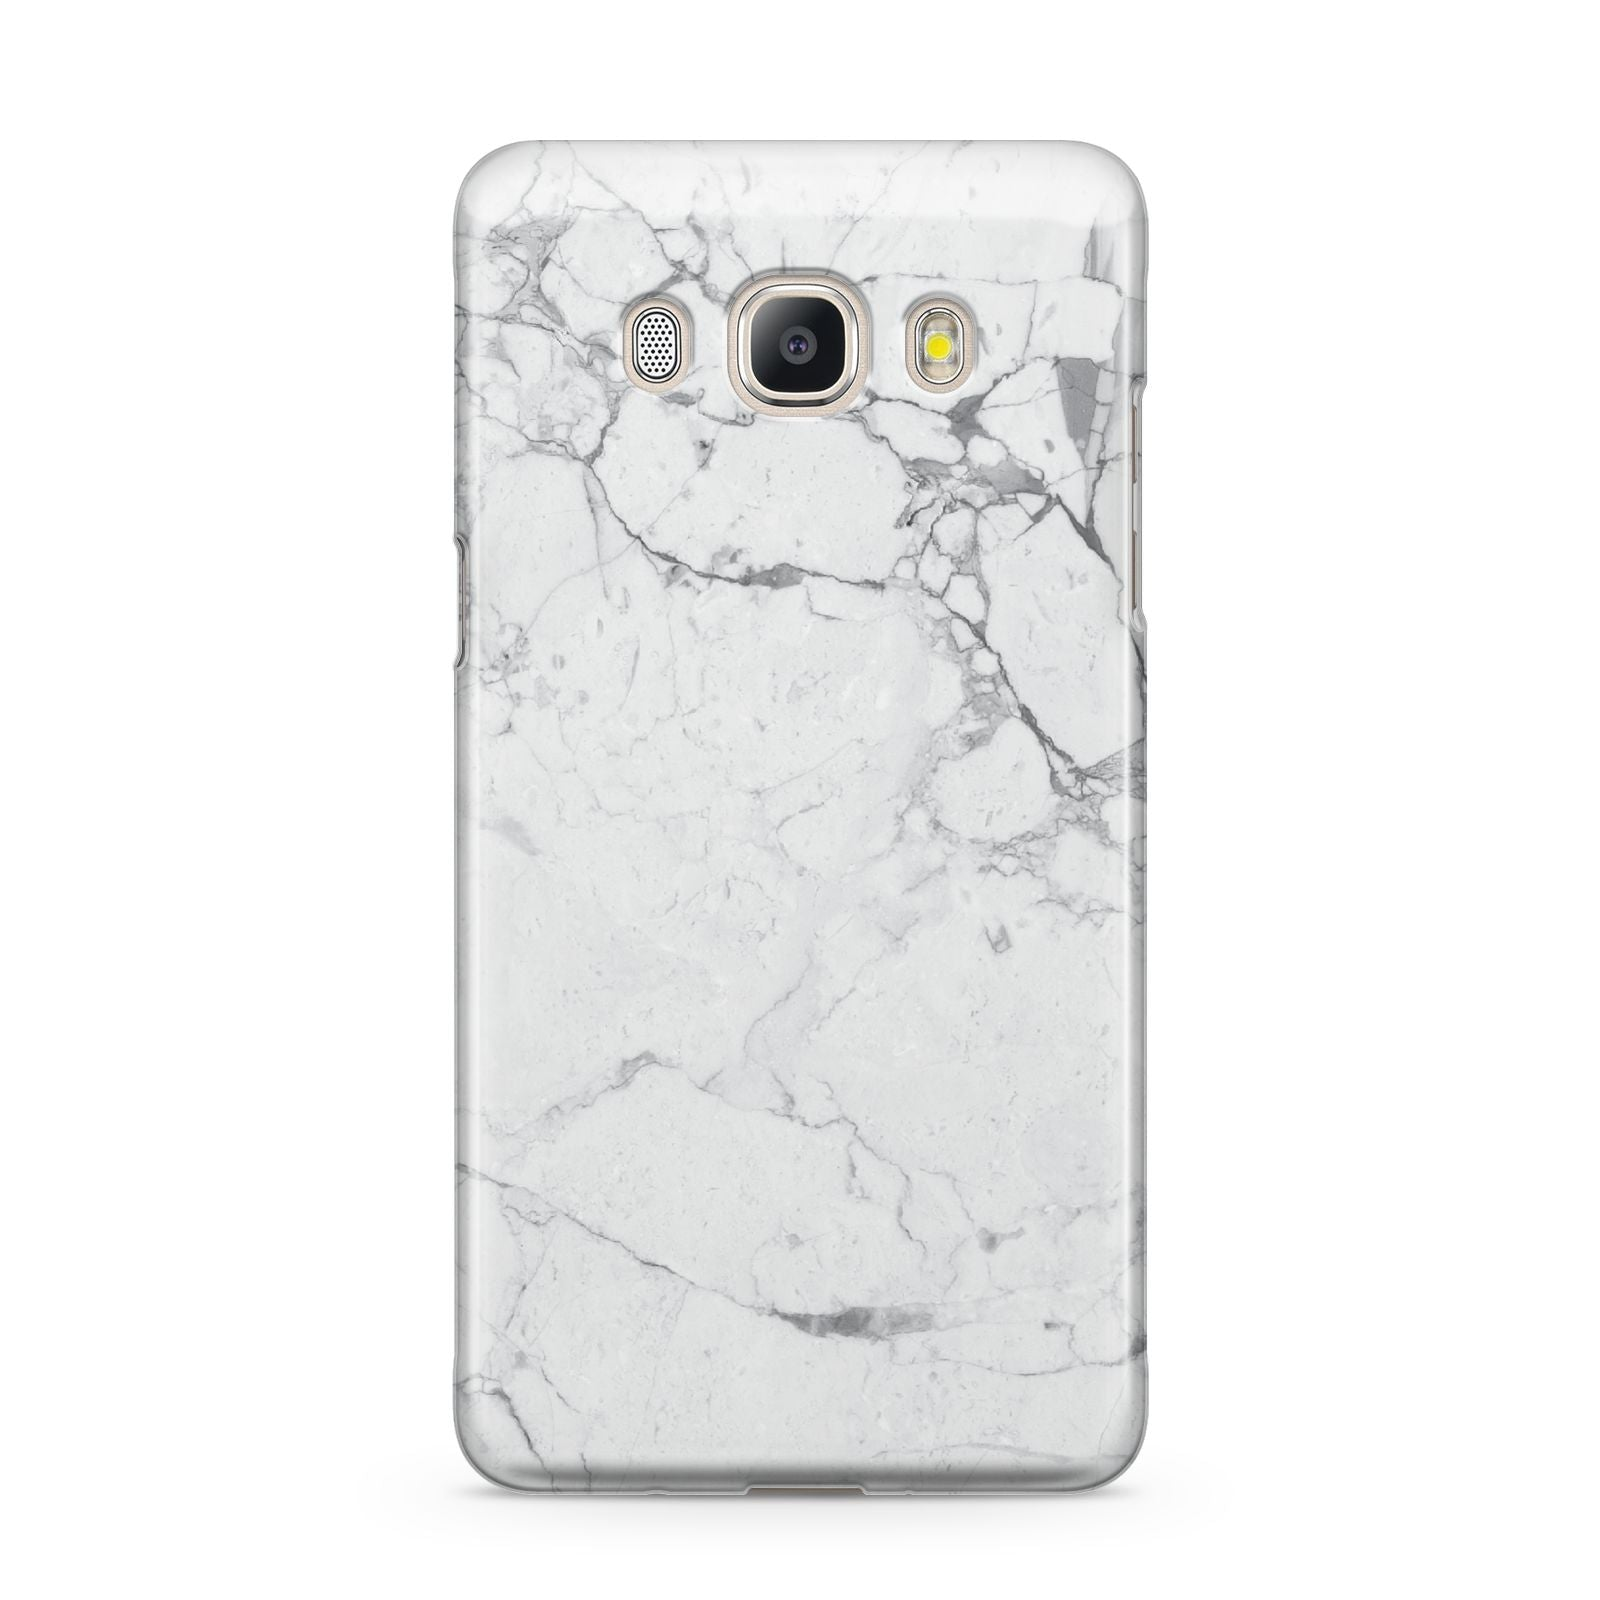 Faux Marble Effect Grey White Samsung Galaxy J5 2016 Case